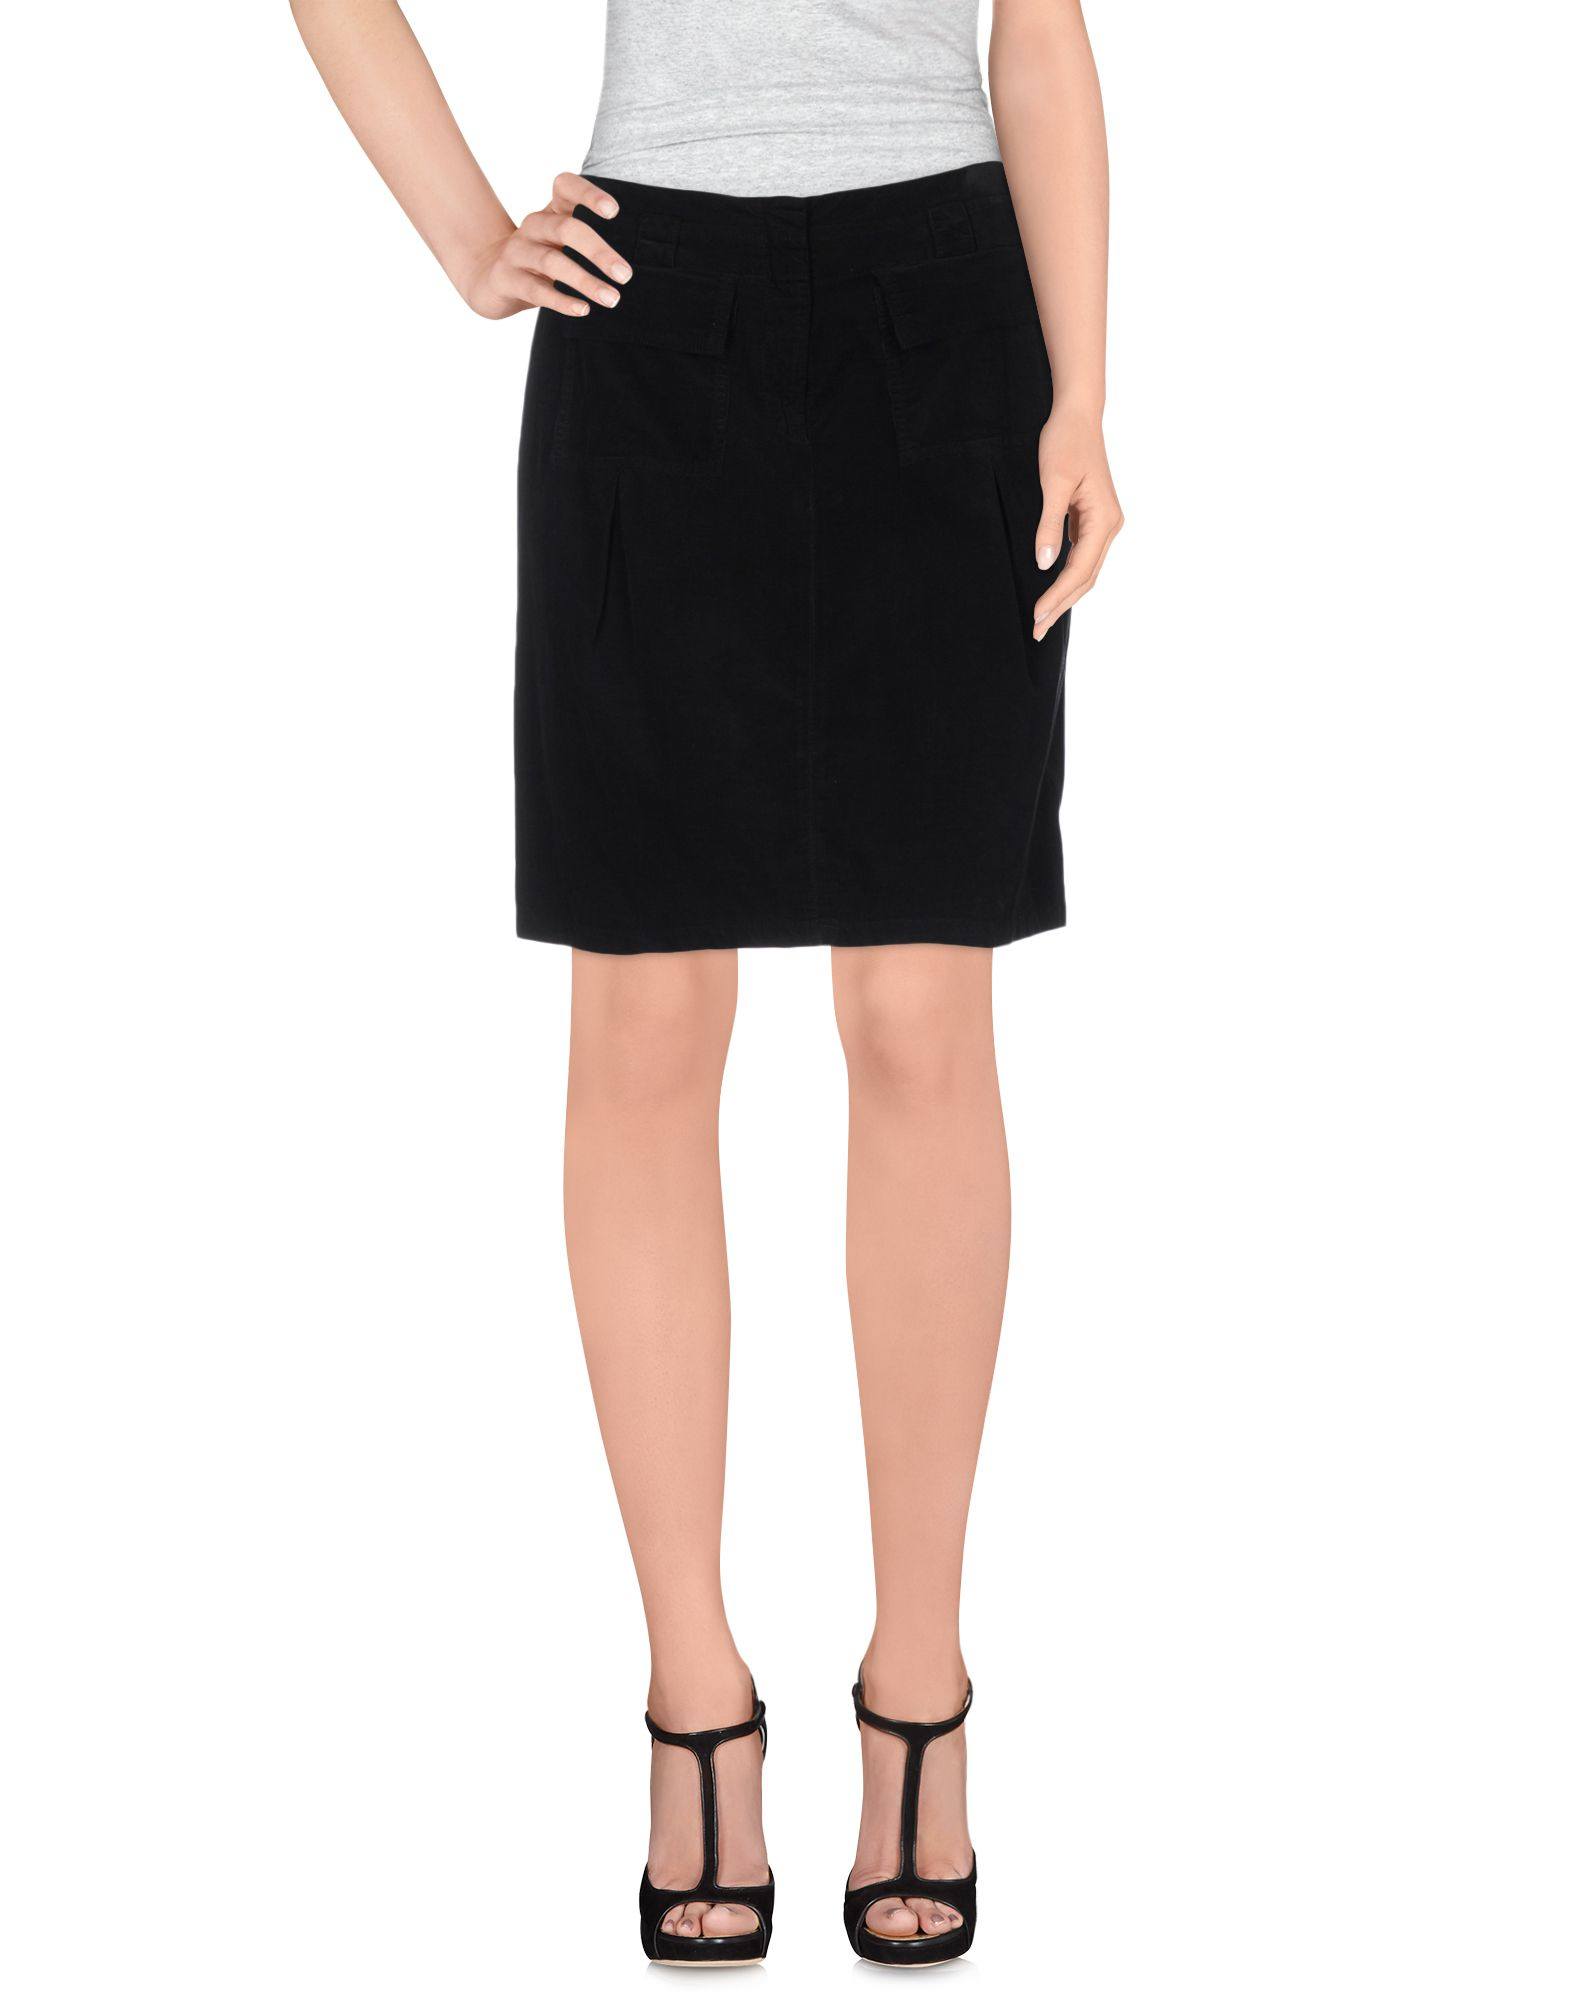 pianurastudio knee length skirt in black lyst